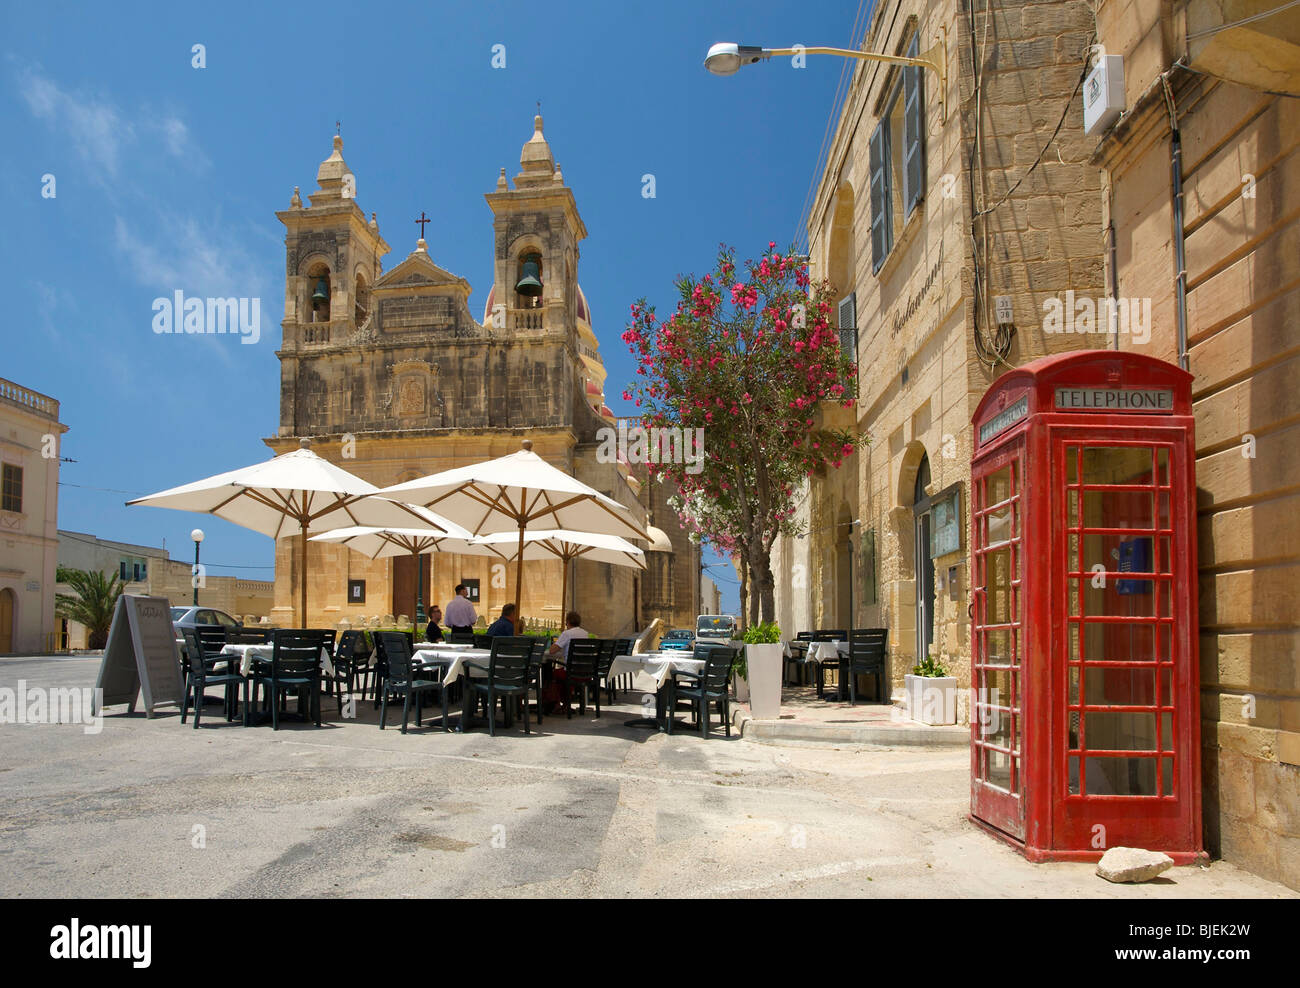 Street cafe and cathedral, San Lawrenz, Gozo, Malta - Stock Image